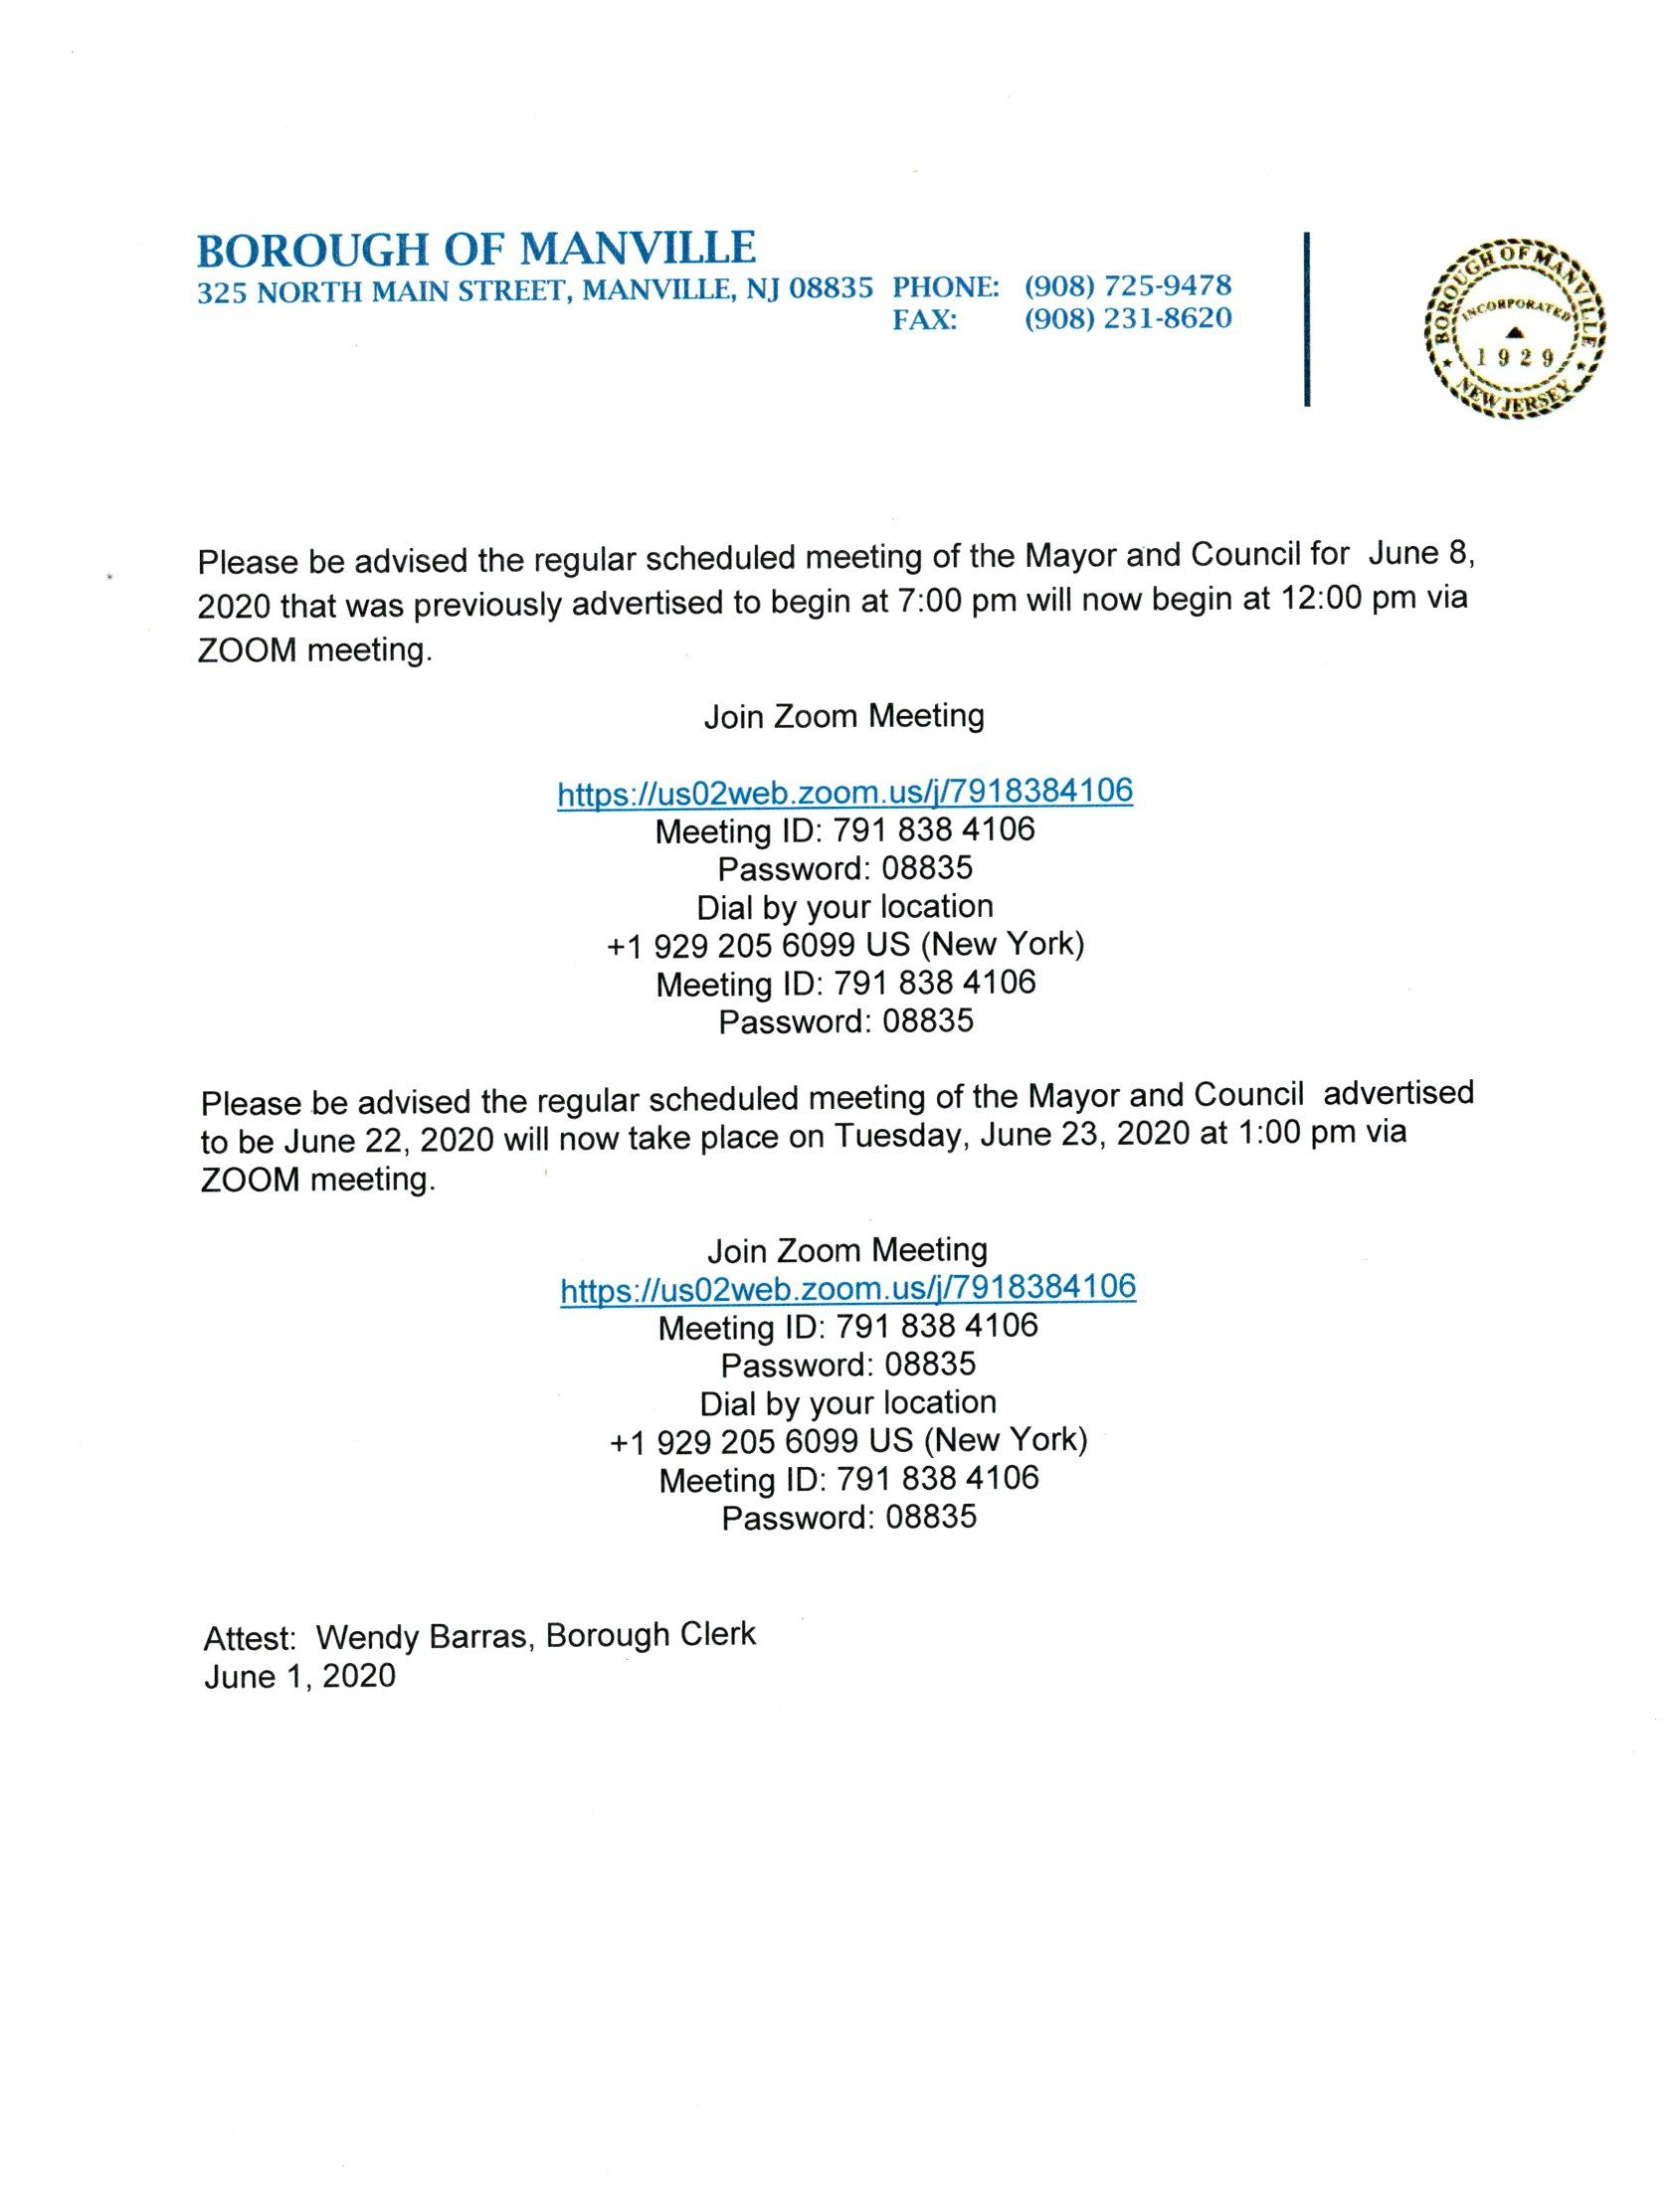 Mayor and Council Meeting Time Change